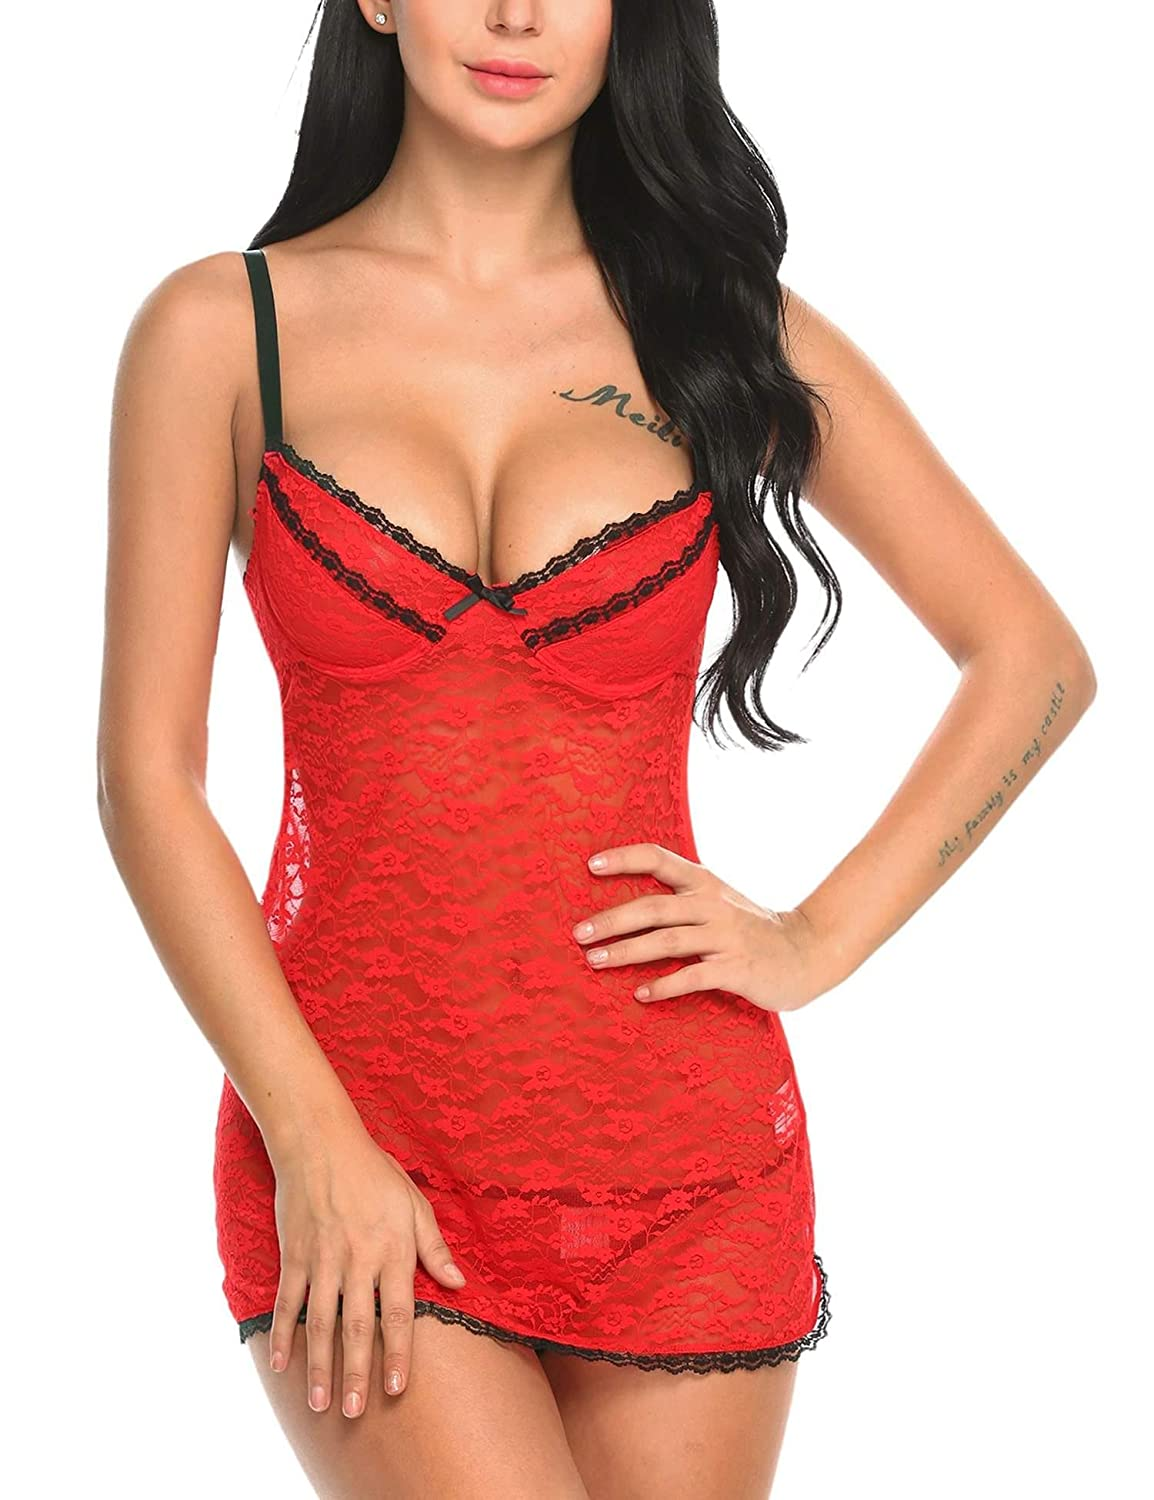 77889dc67 Sexy Underwire Floral Lace Lingerie Sheer Night Gown with G-String Thong  Underwire lace bust